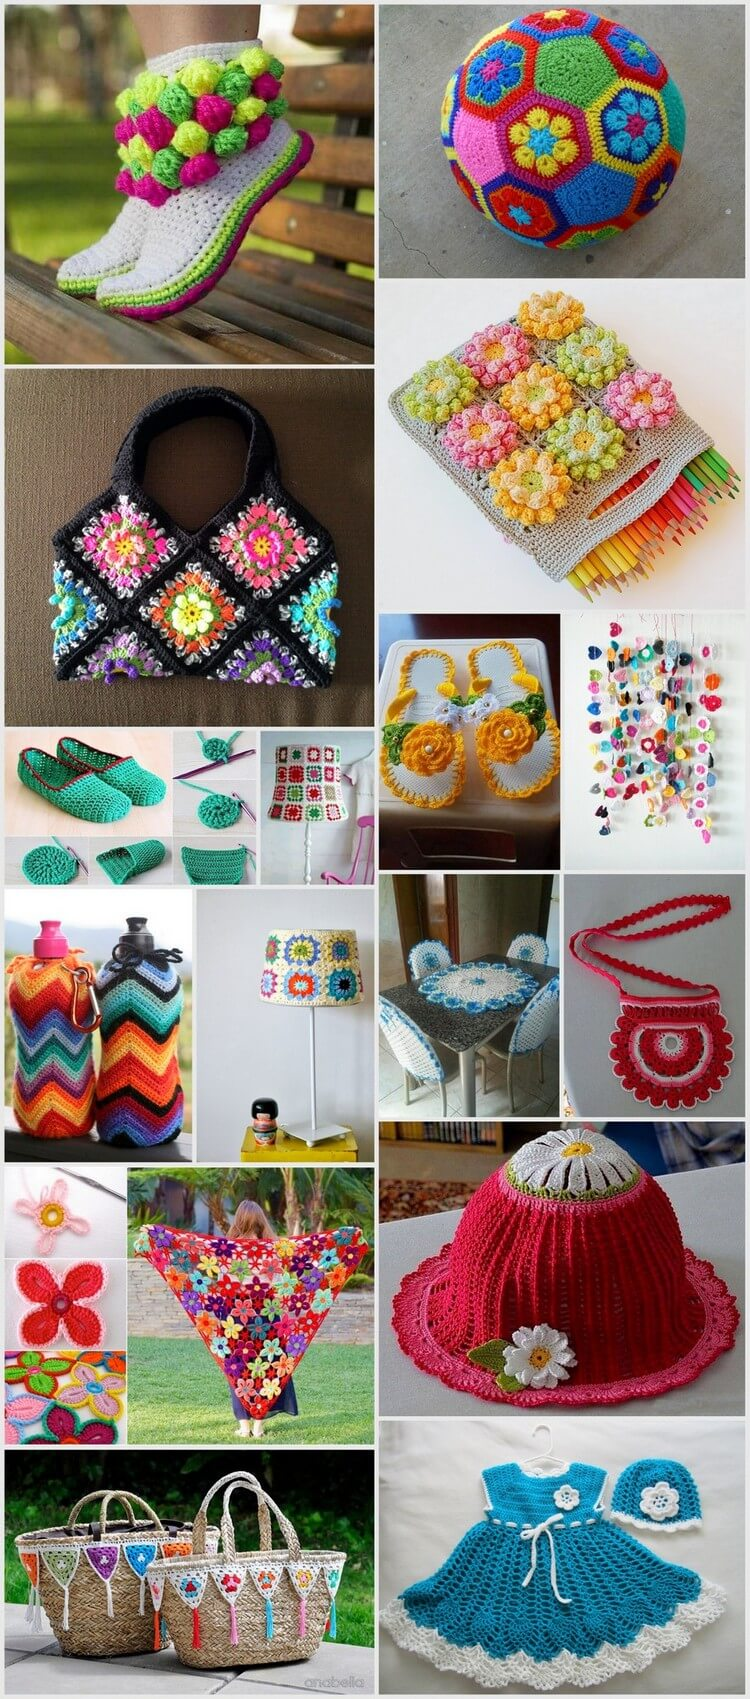 Best Ideas for Easy Crochet Patterns